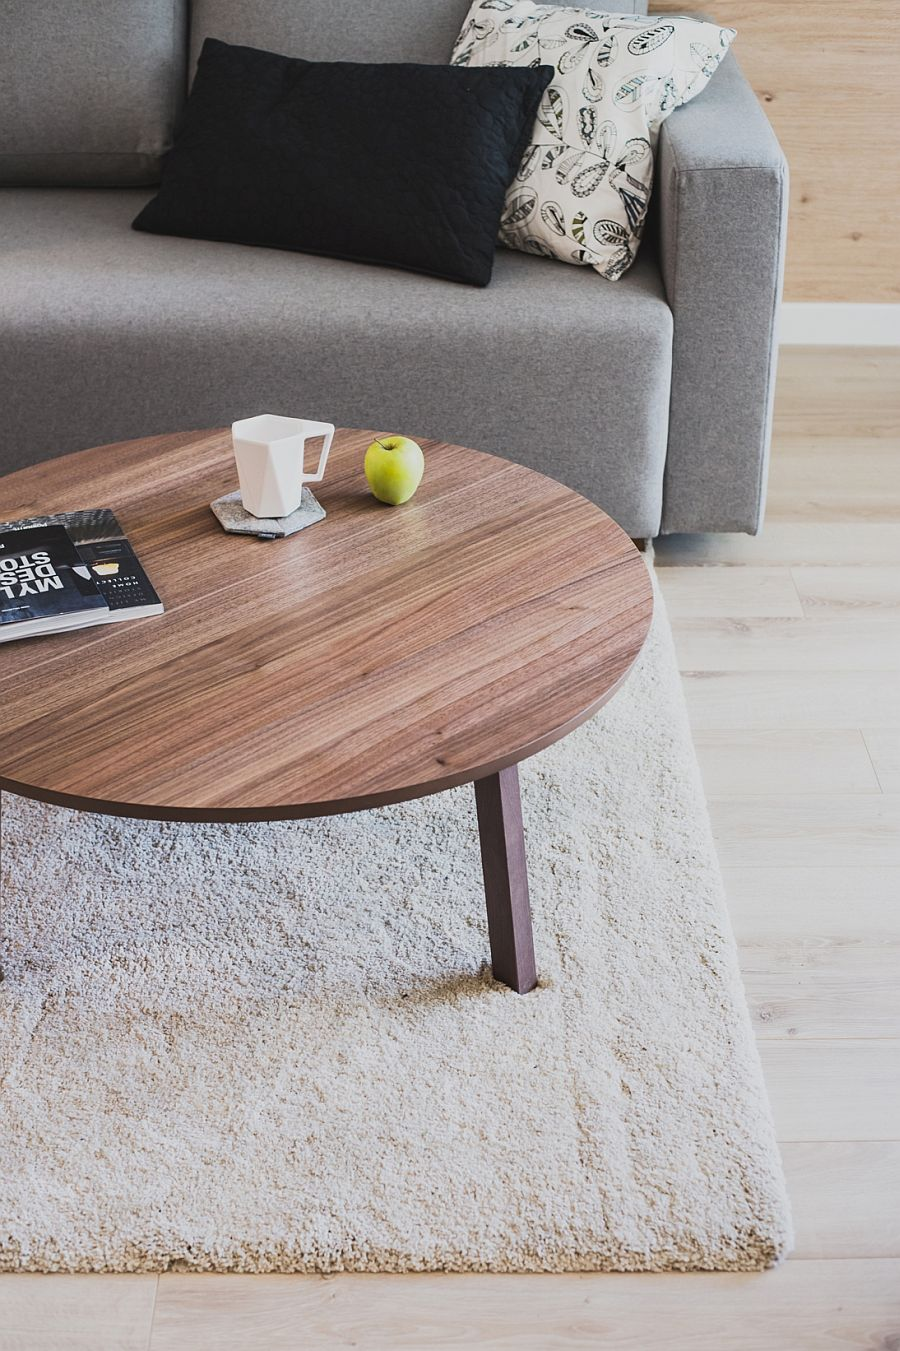 Plush rug, gray couch and round coffee table ifor the small living room